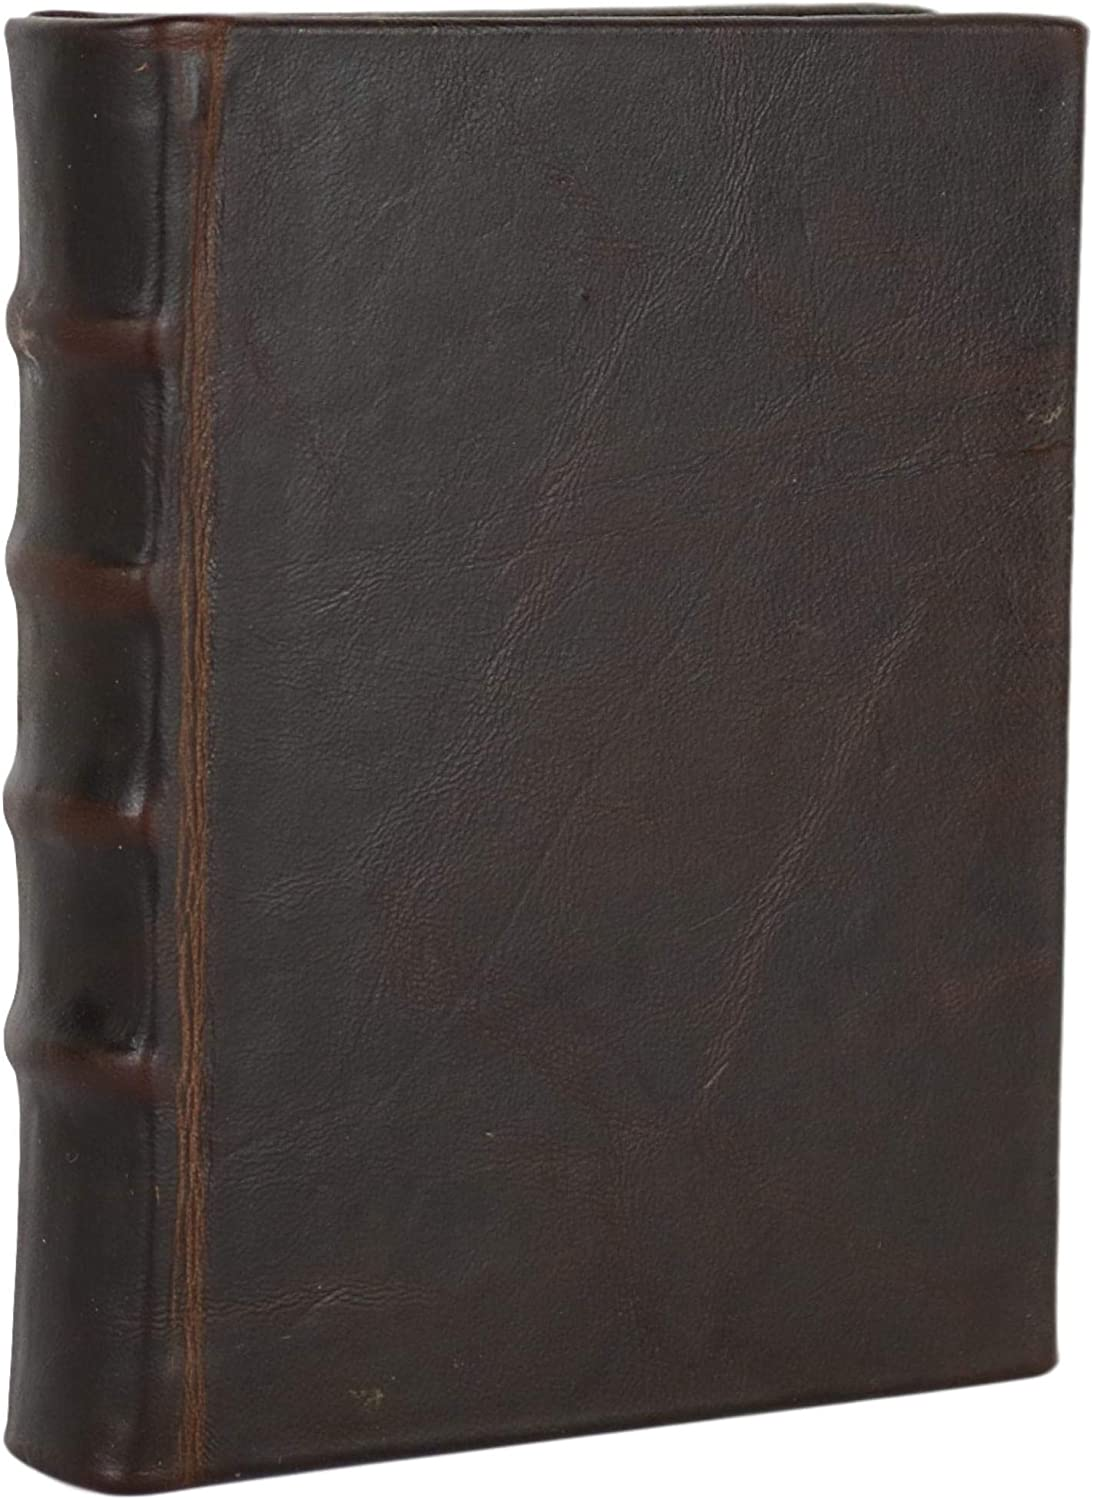 Old Brown Leather Bound Book Journal Notebook Diary Hardcover Ruled Lined 5 X 7 Inches